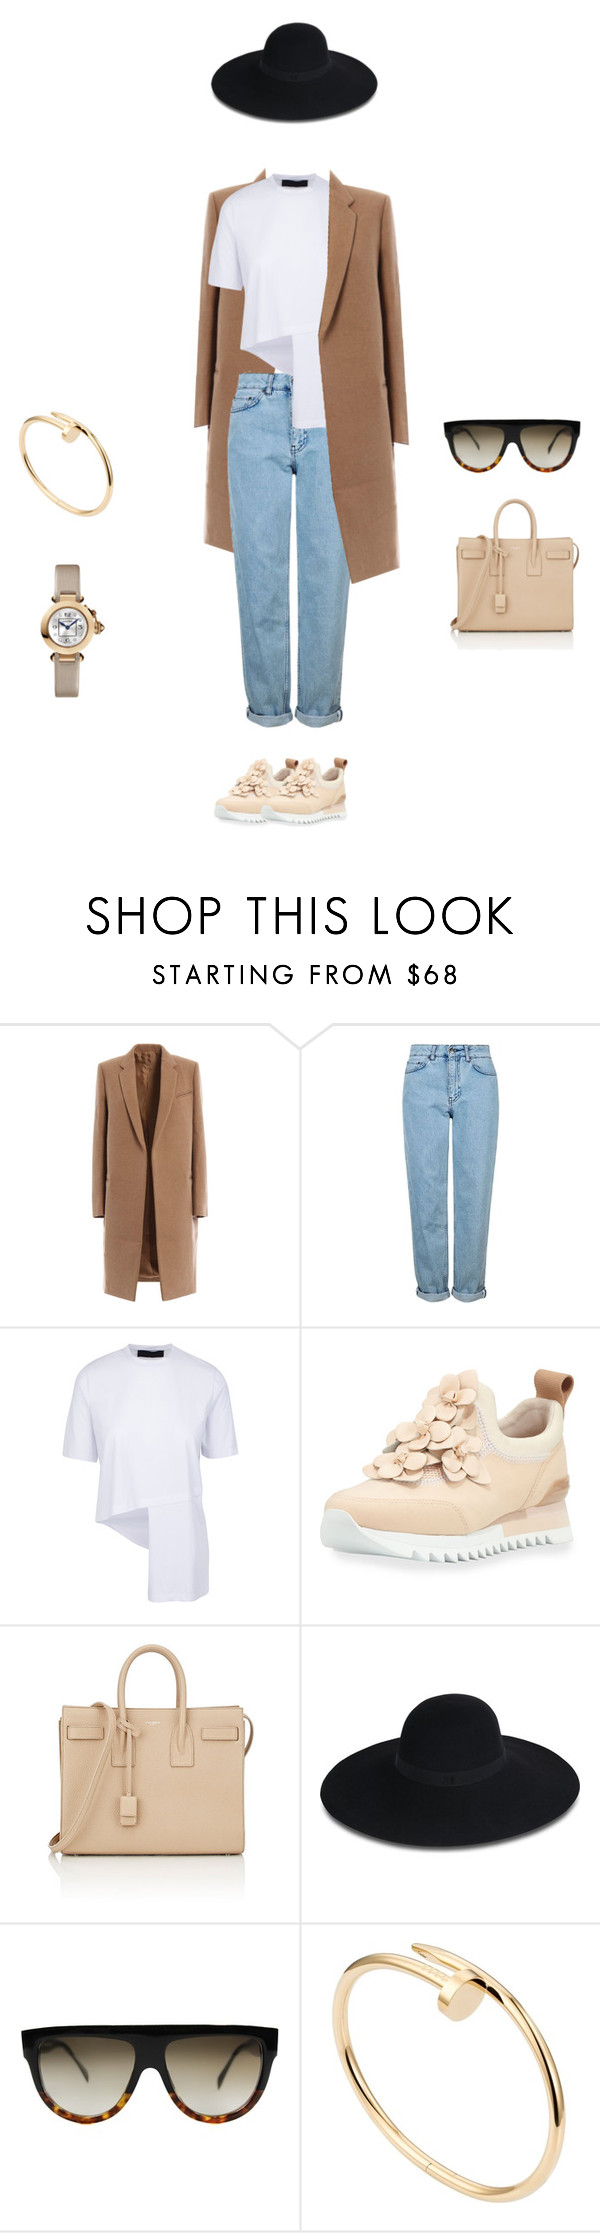 """Sans titre #249"" by fashianlover ❤ liked on Polyvore featuring Topshop, Tory Burch, Yves Saint Laurent, Maison Michel, CÉLINE and Cartier"